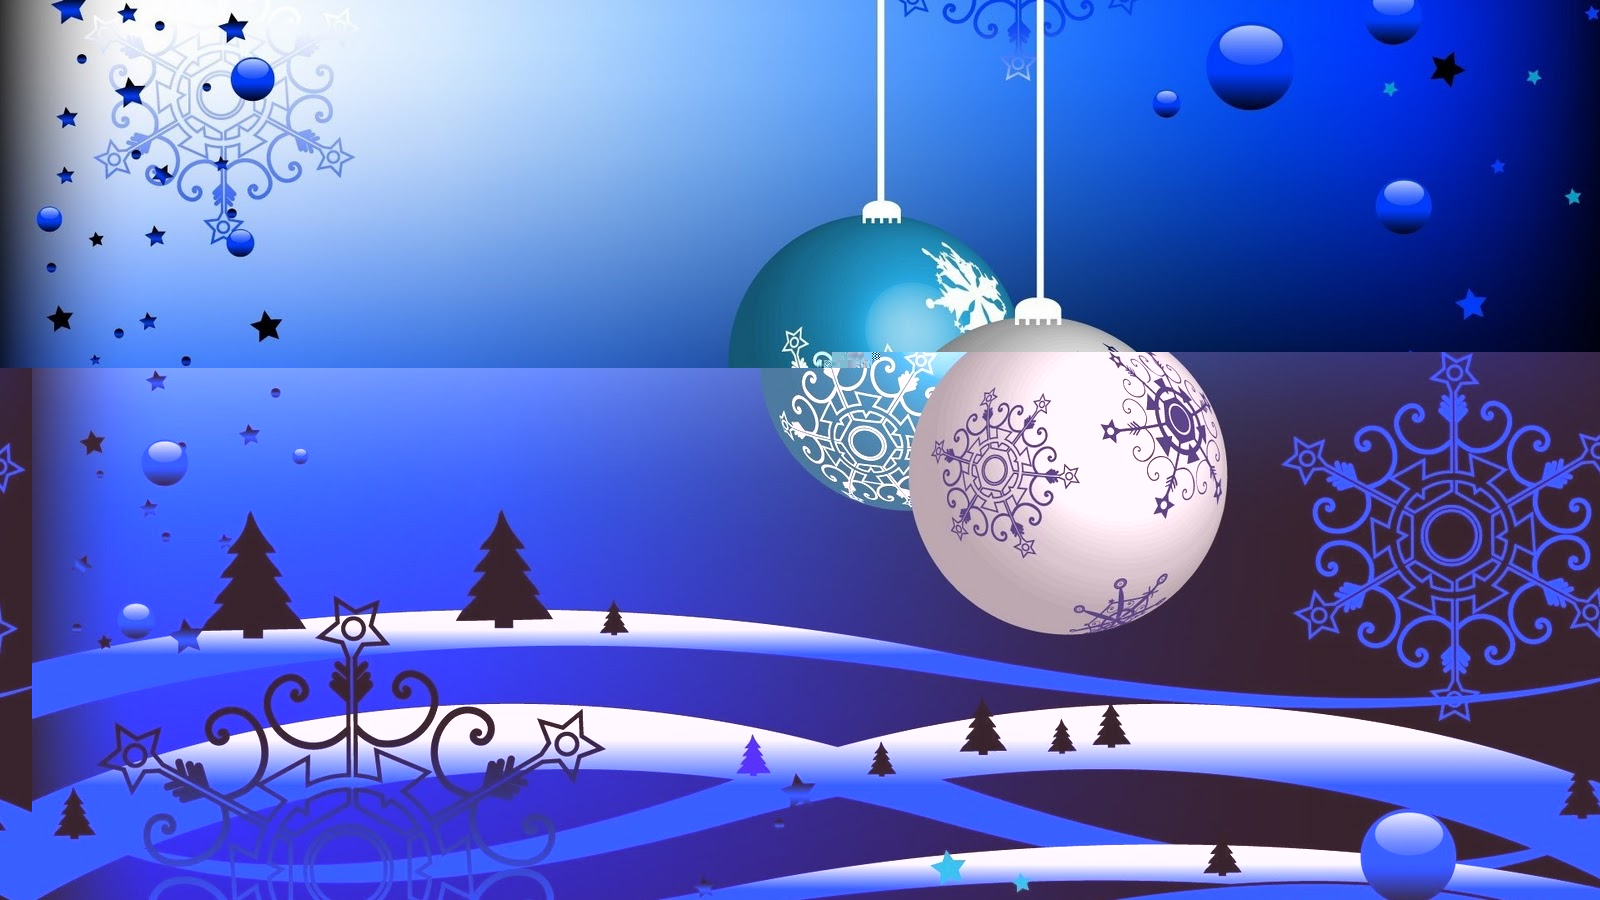 Abstrack Wallpaper Wallpaper Christmas Congratulation 2011